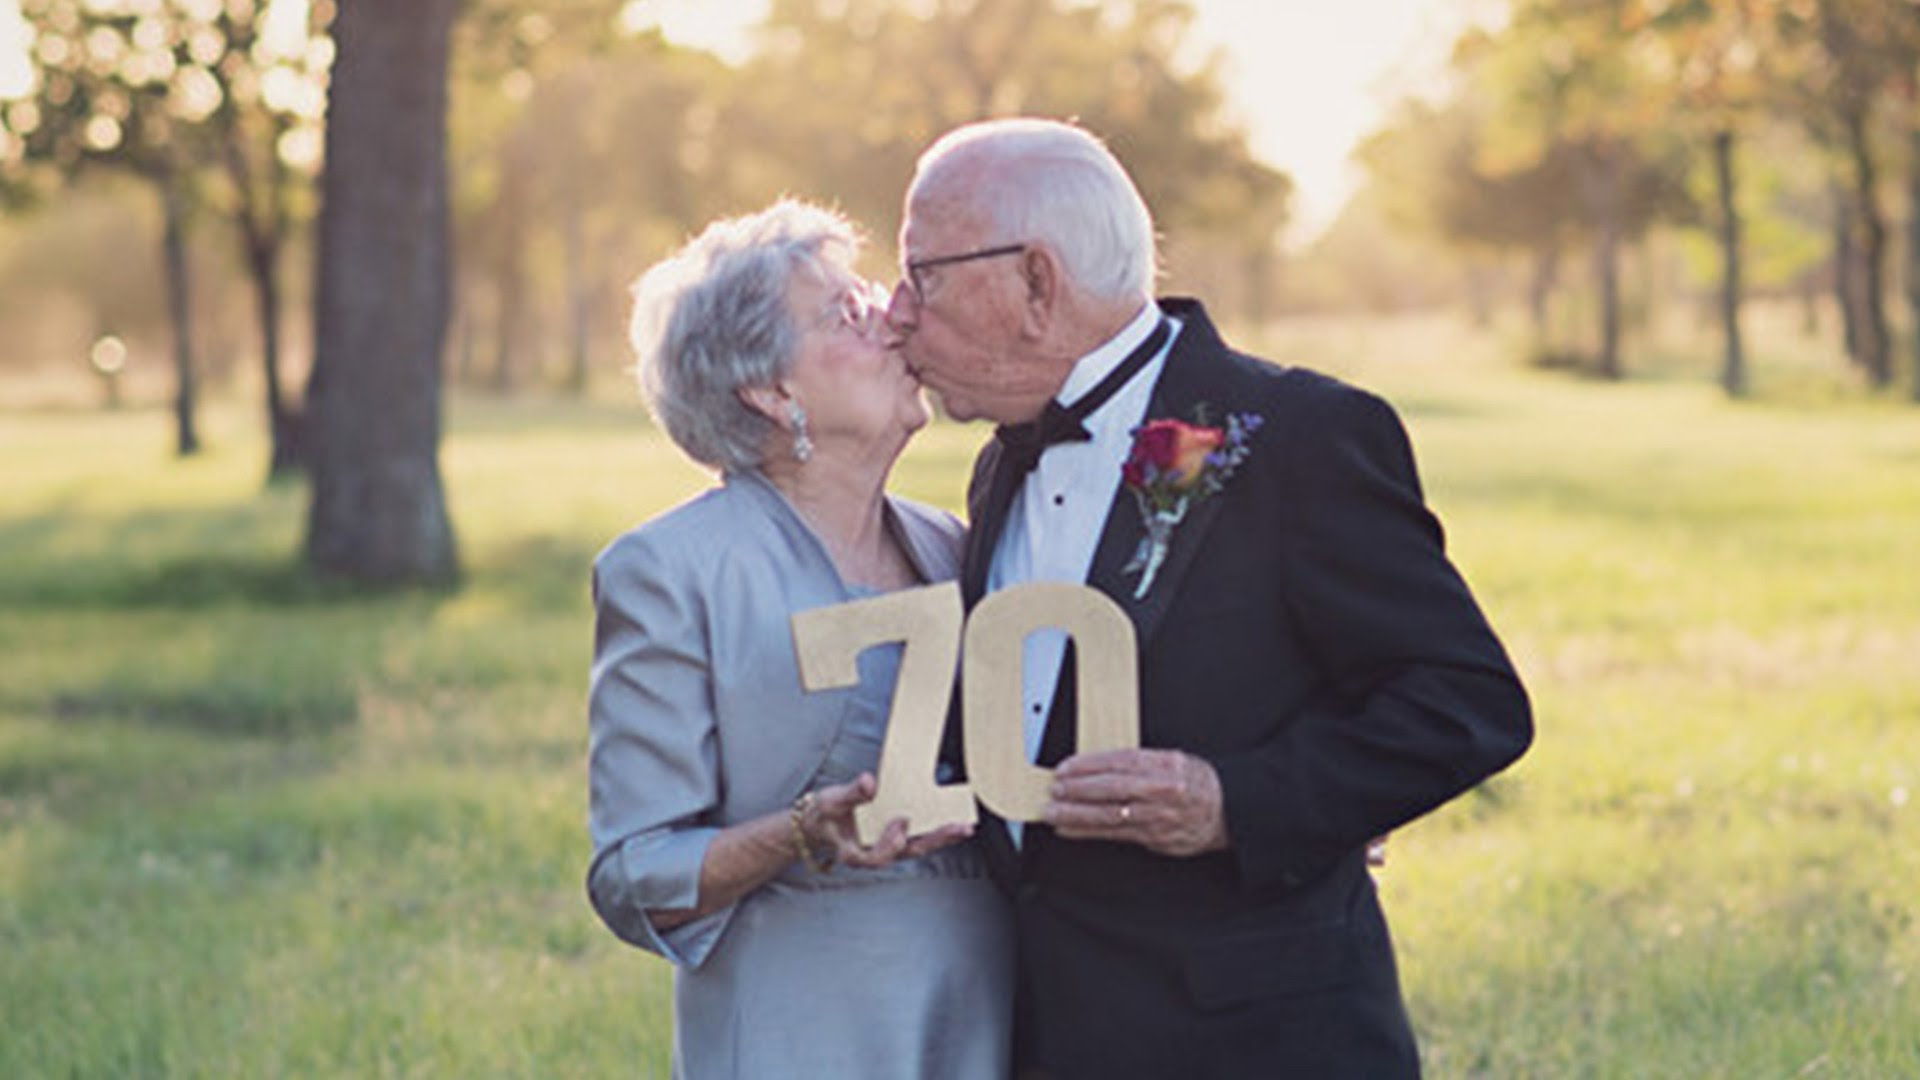 A couple married for 70 years takes wedding photos for the first time